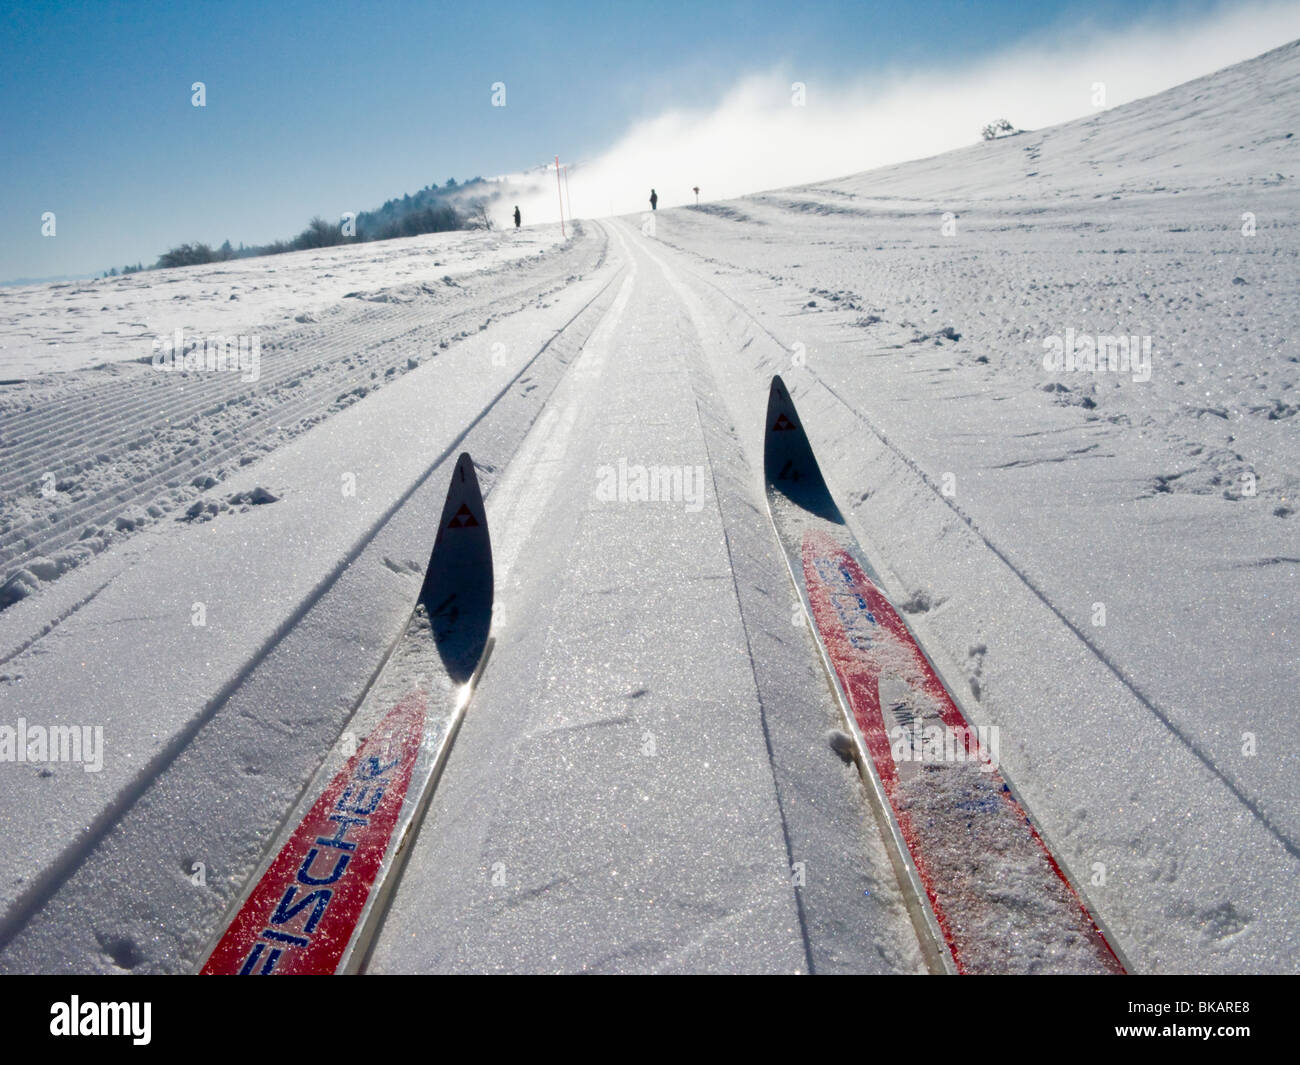 Cross country ski / skis on a skier groove track in the French Alpine resort of Plateau De Sur Lyand. Ain department - Stock Image